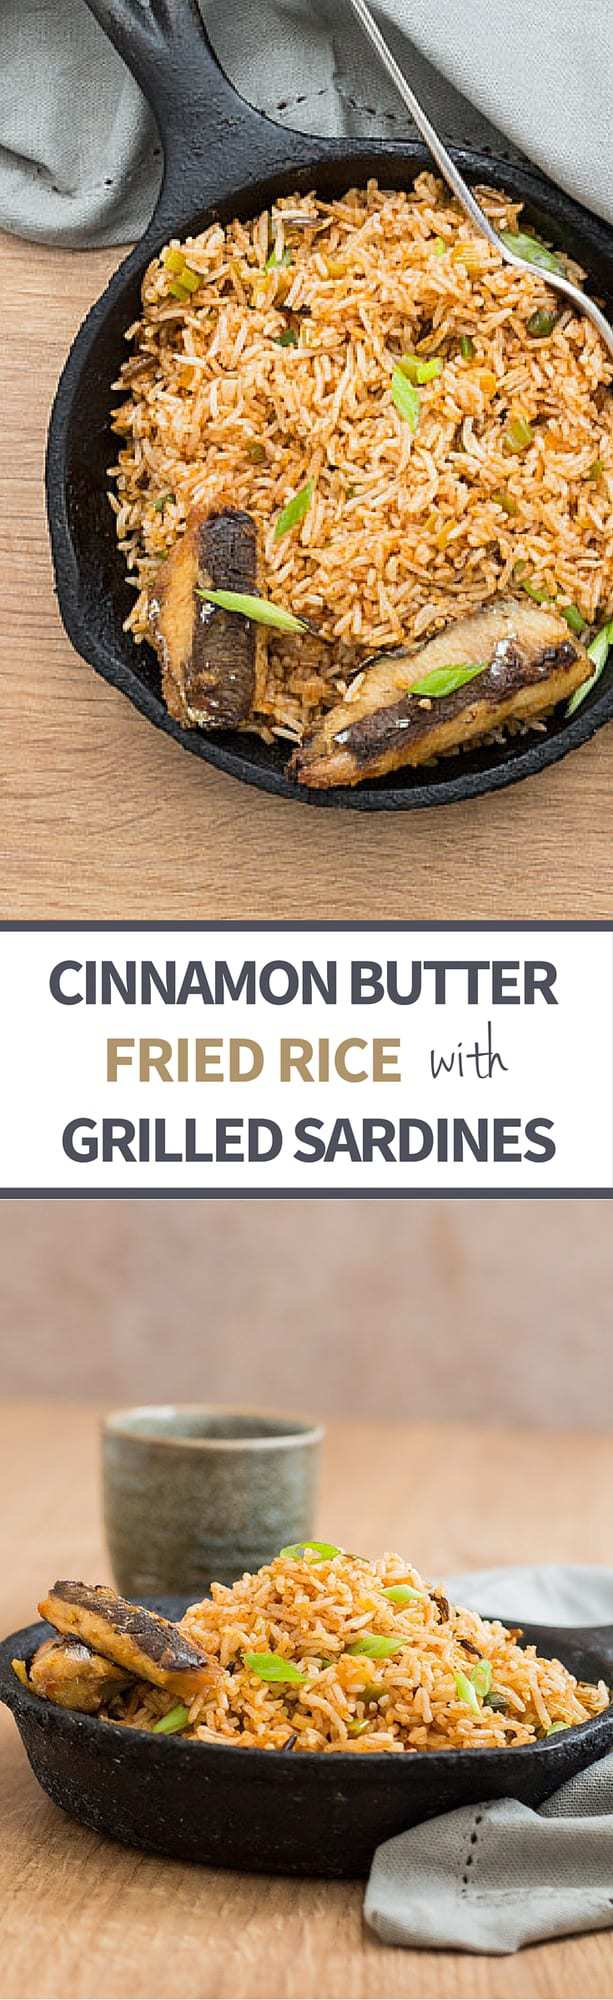 Quick Cinnamon Butter Fried Rice With Grilled Sardines - Recipes From A Pantry